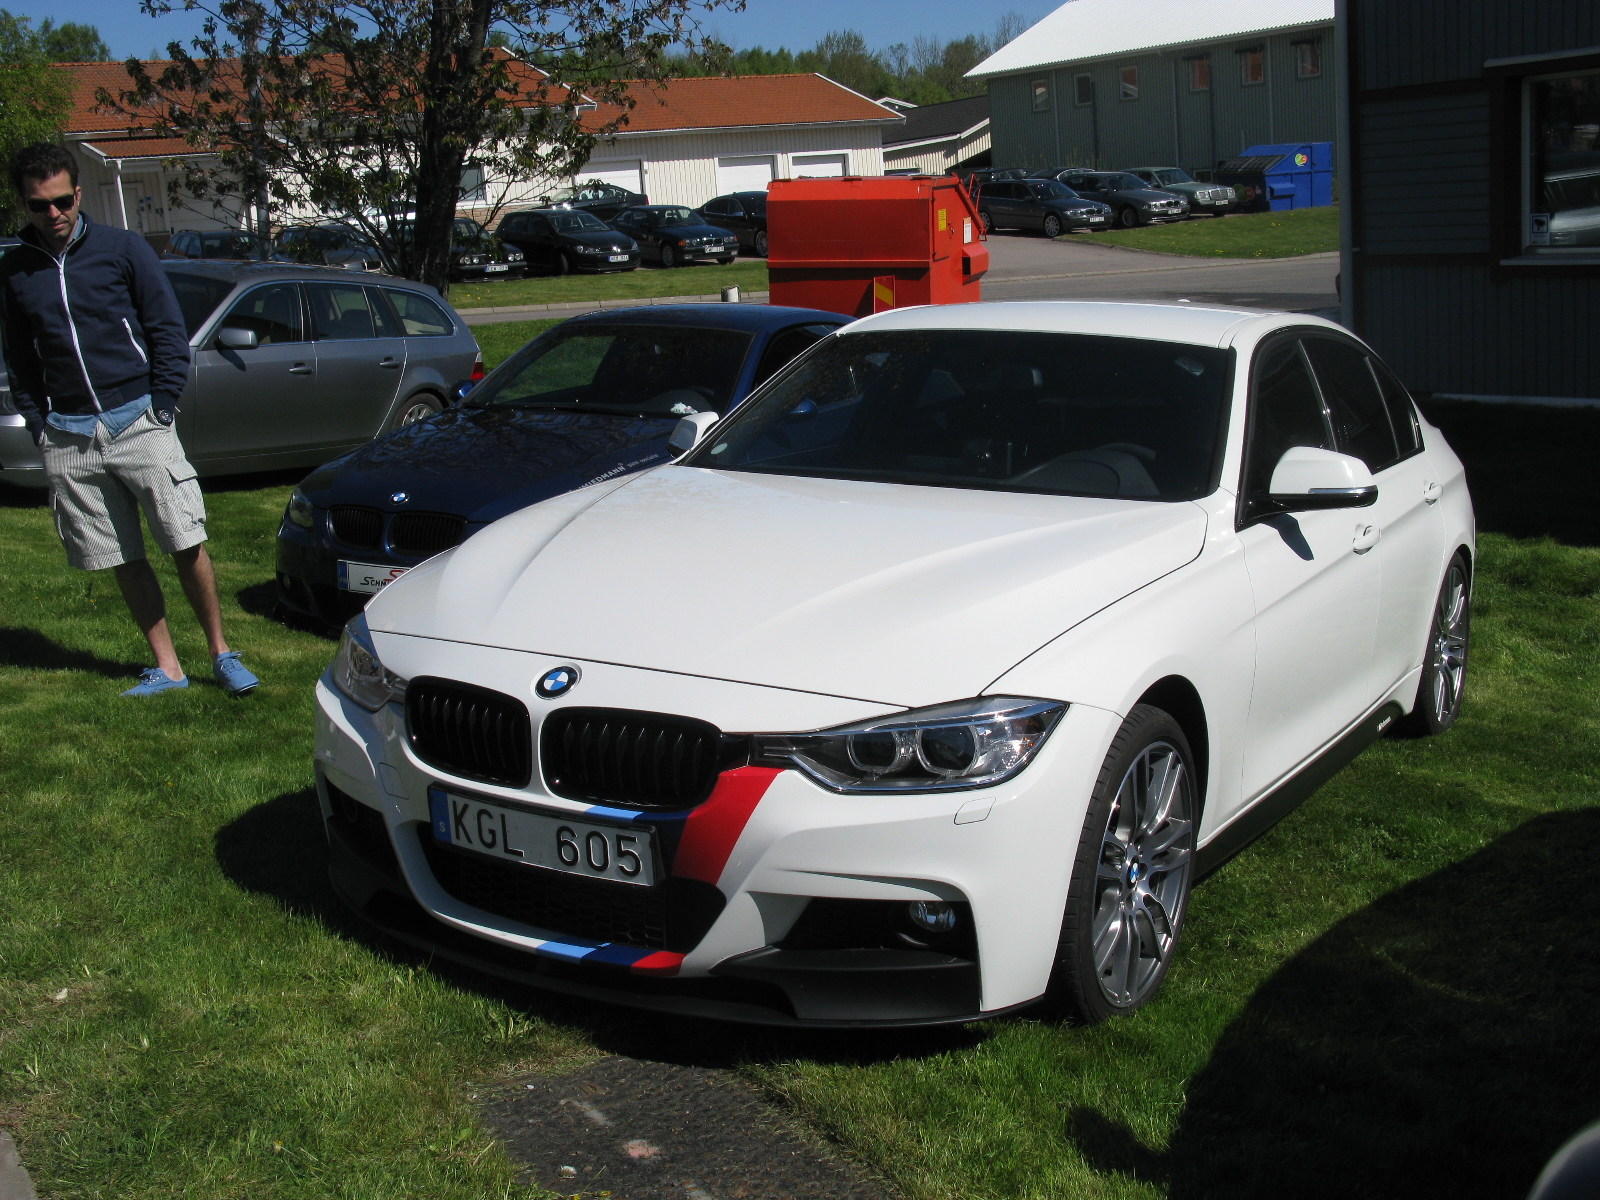 FileBMW I M Sport F Jpg Wikimedia Commons - 2014 bmw 328i m sport